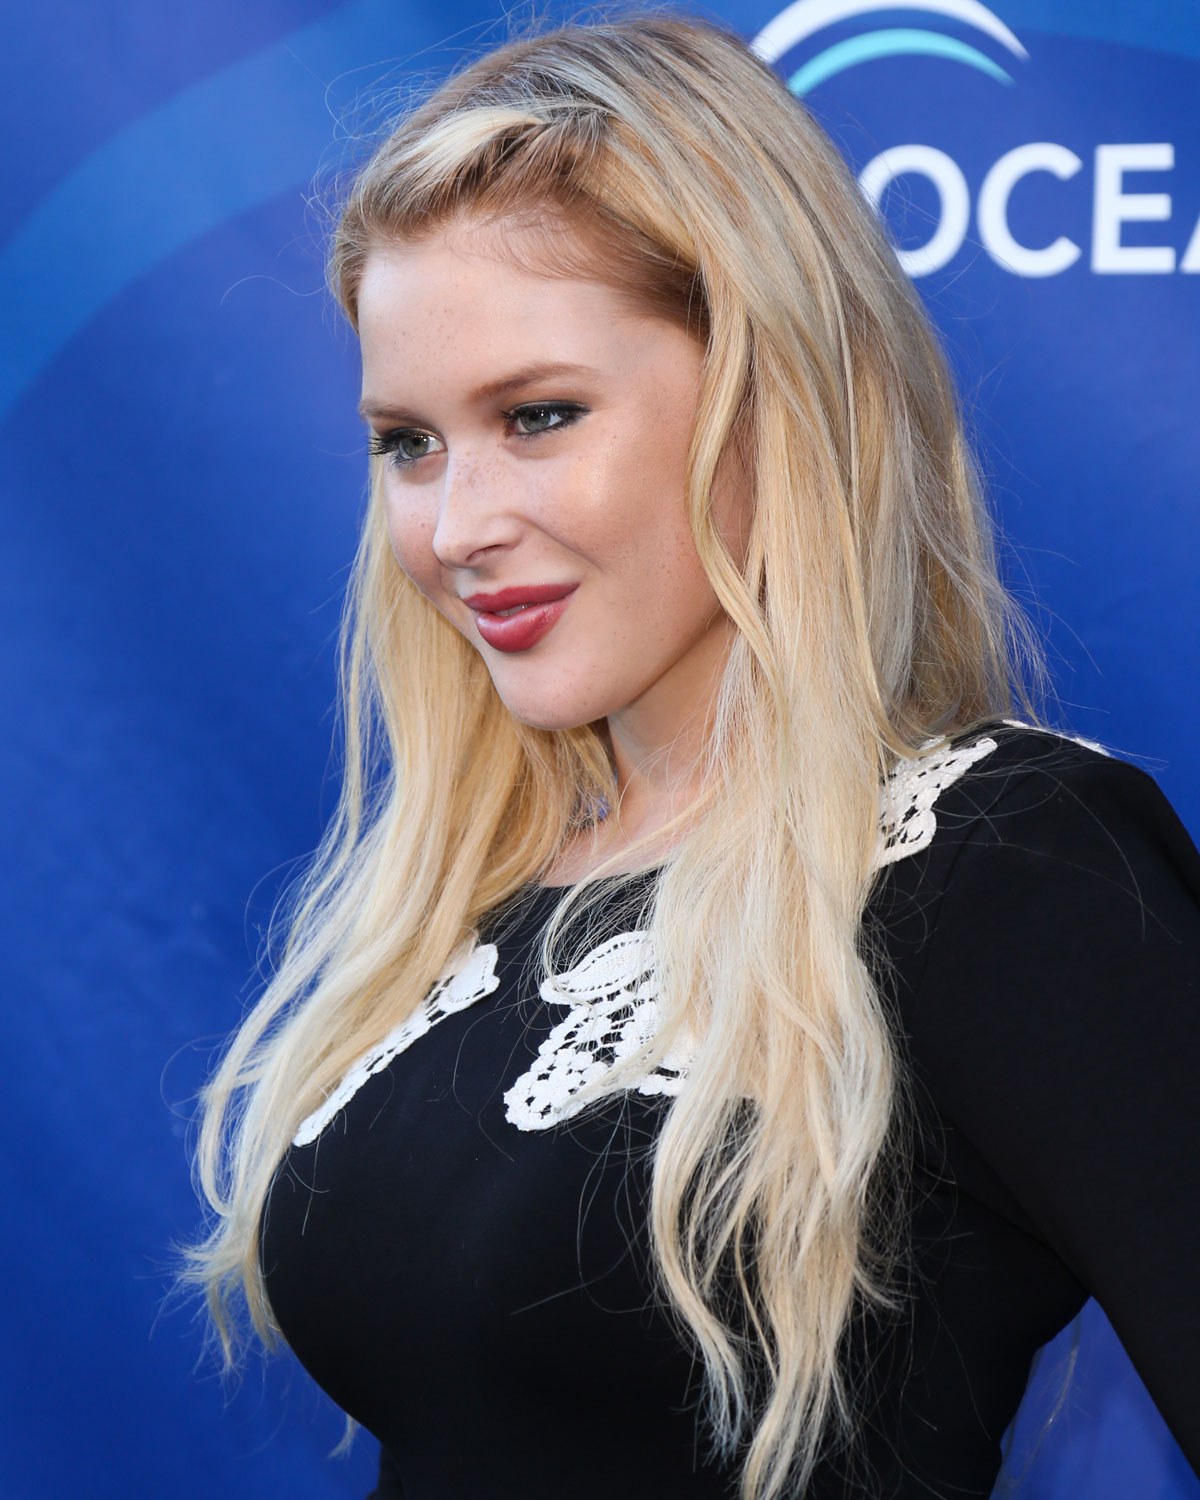 Hot Renee Olstead At Oceanas Seachange Summer Party At Laguna Beach